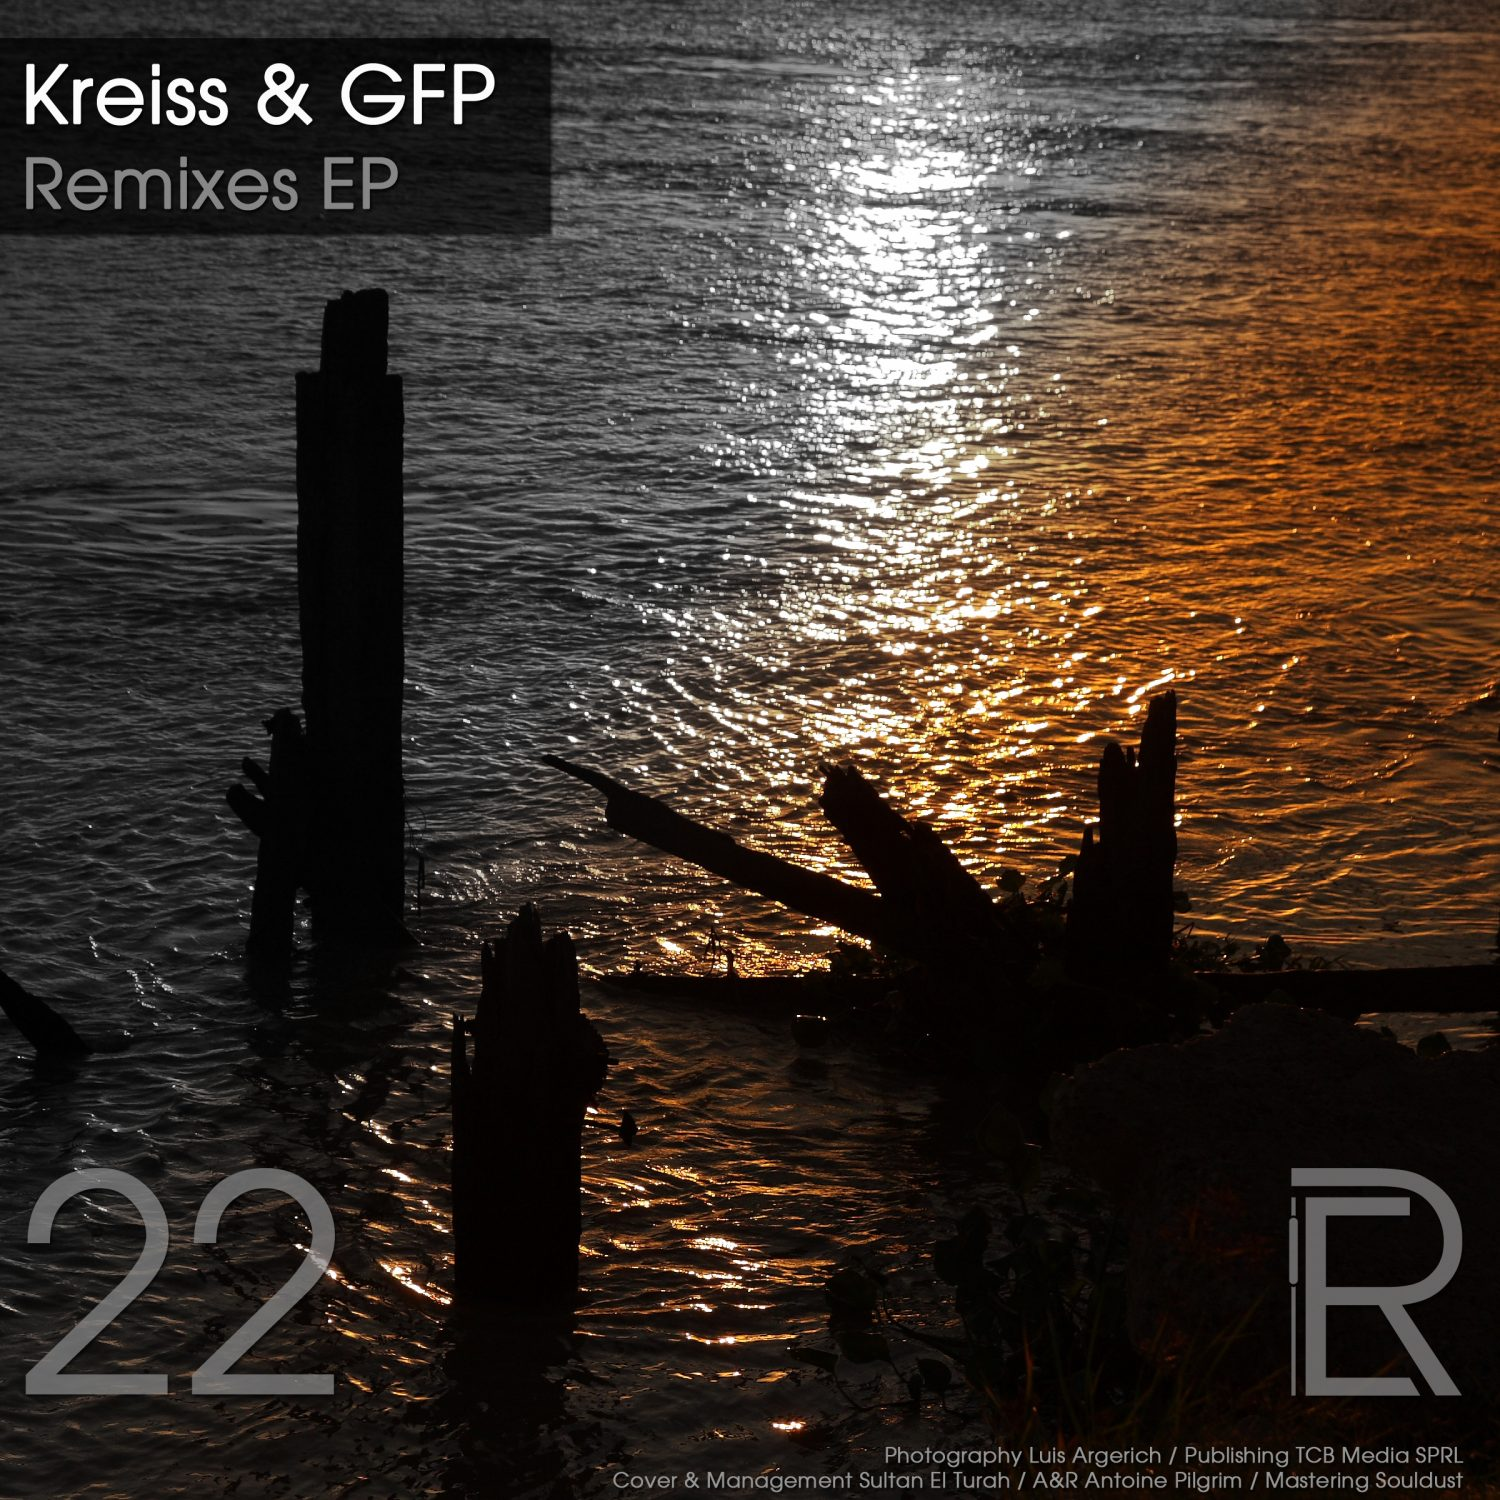 ER022 - Kreiss & GFP - Remixes EP - Electronical Reeds